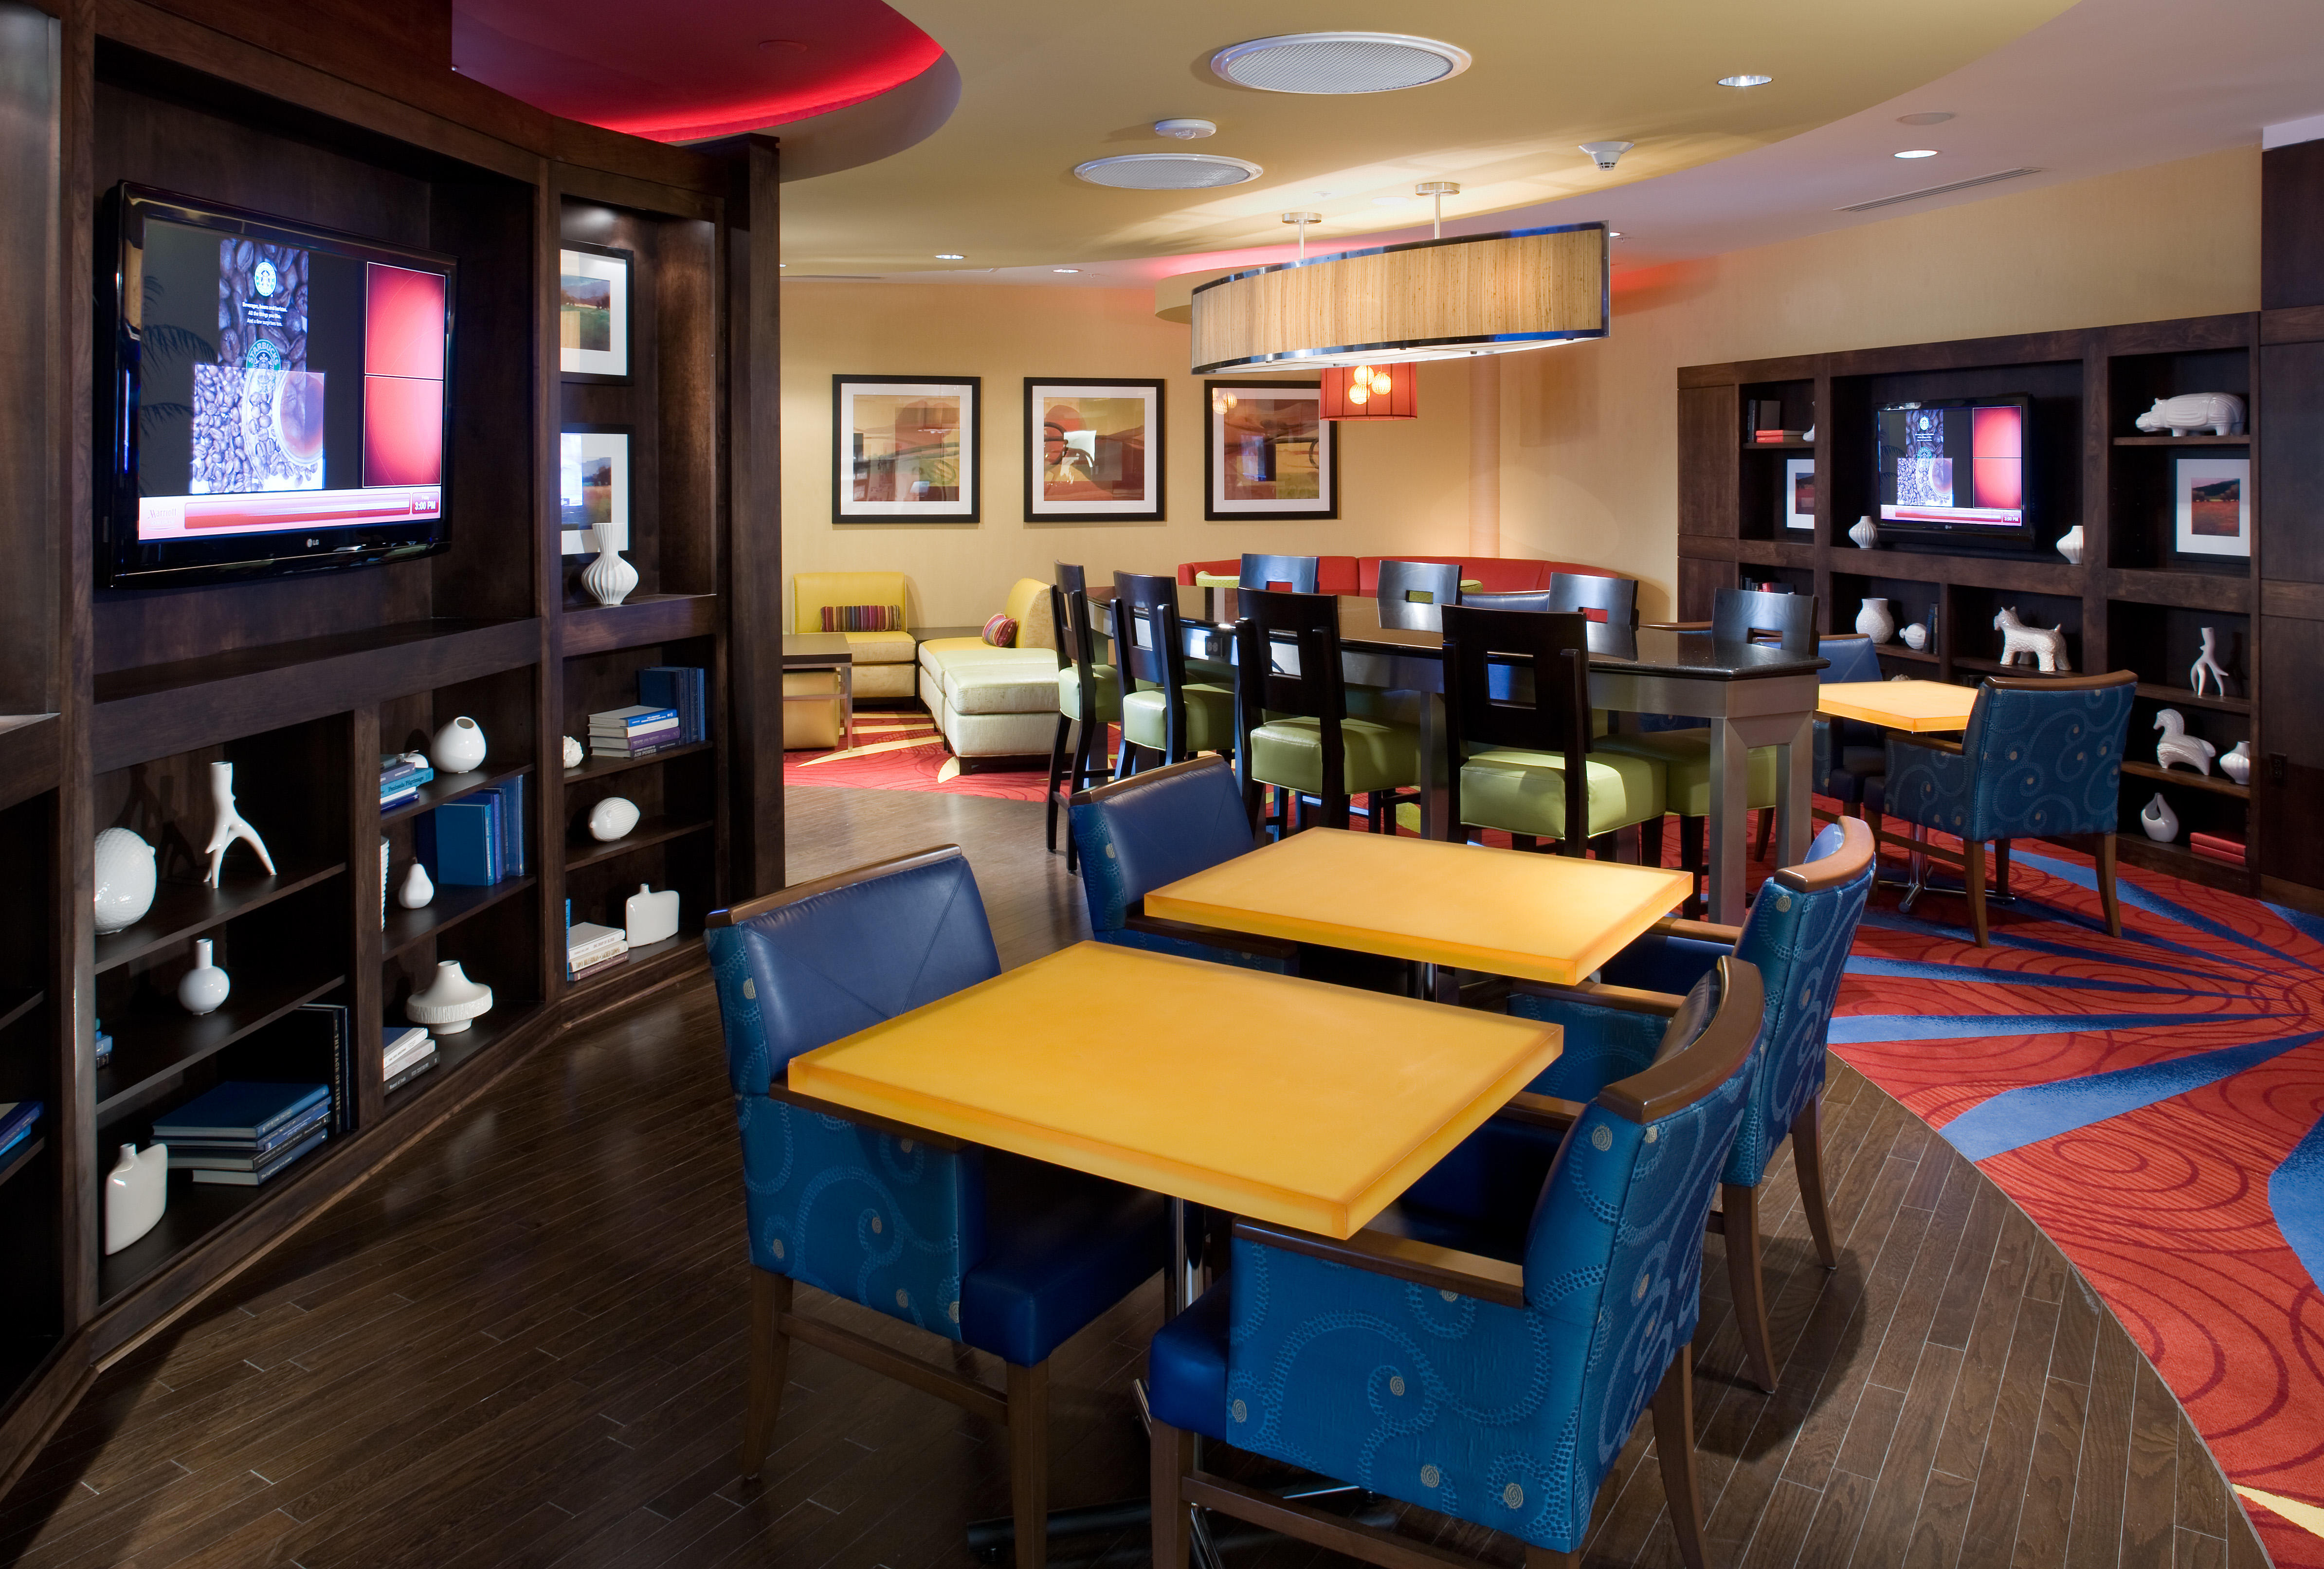 virginia beach near hotel meeting The hilton garden inn hotel in virginia beach, va town center features over 2,500 sq ft of meeting space for up to 100 people and on-site catering.